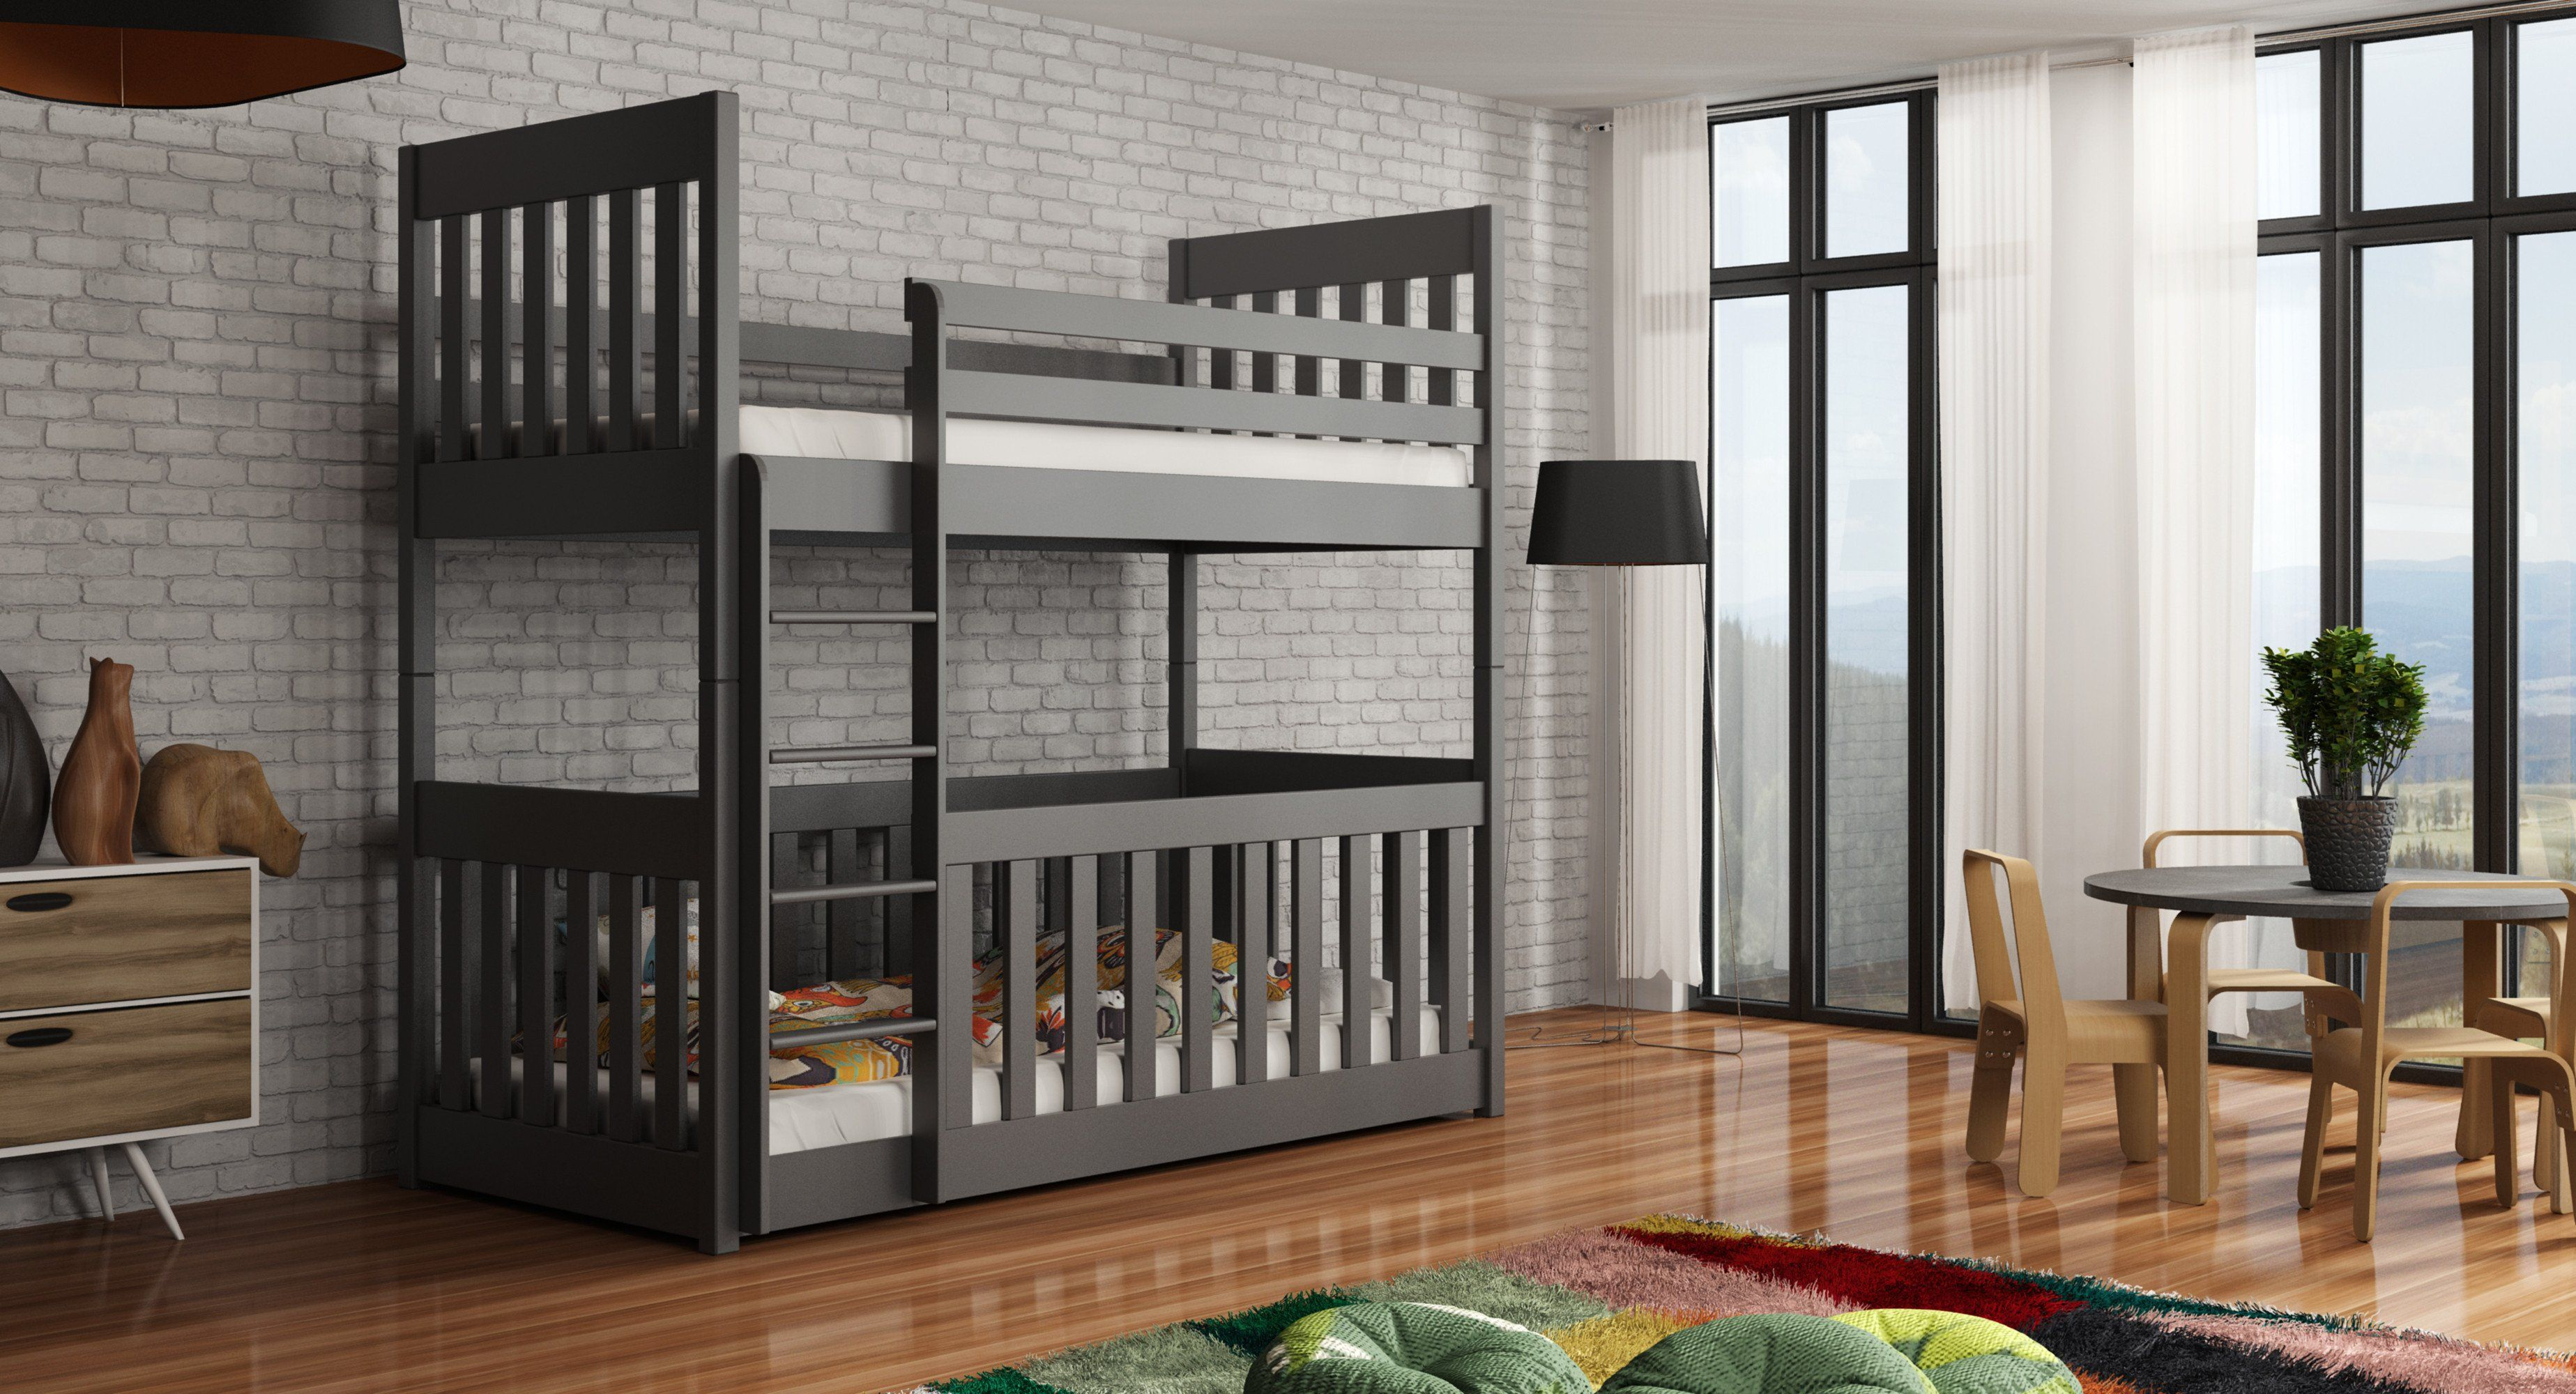 Best Wooden Bunk Bed Cris With Cot Bed Wooden Bunk Beds Bunk 400 x 300